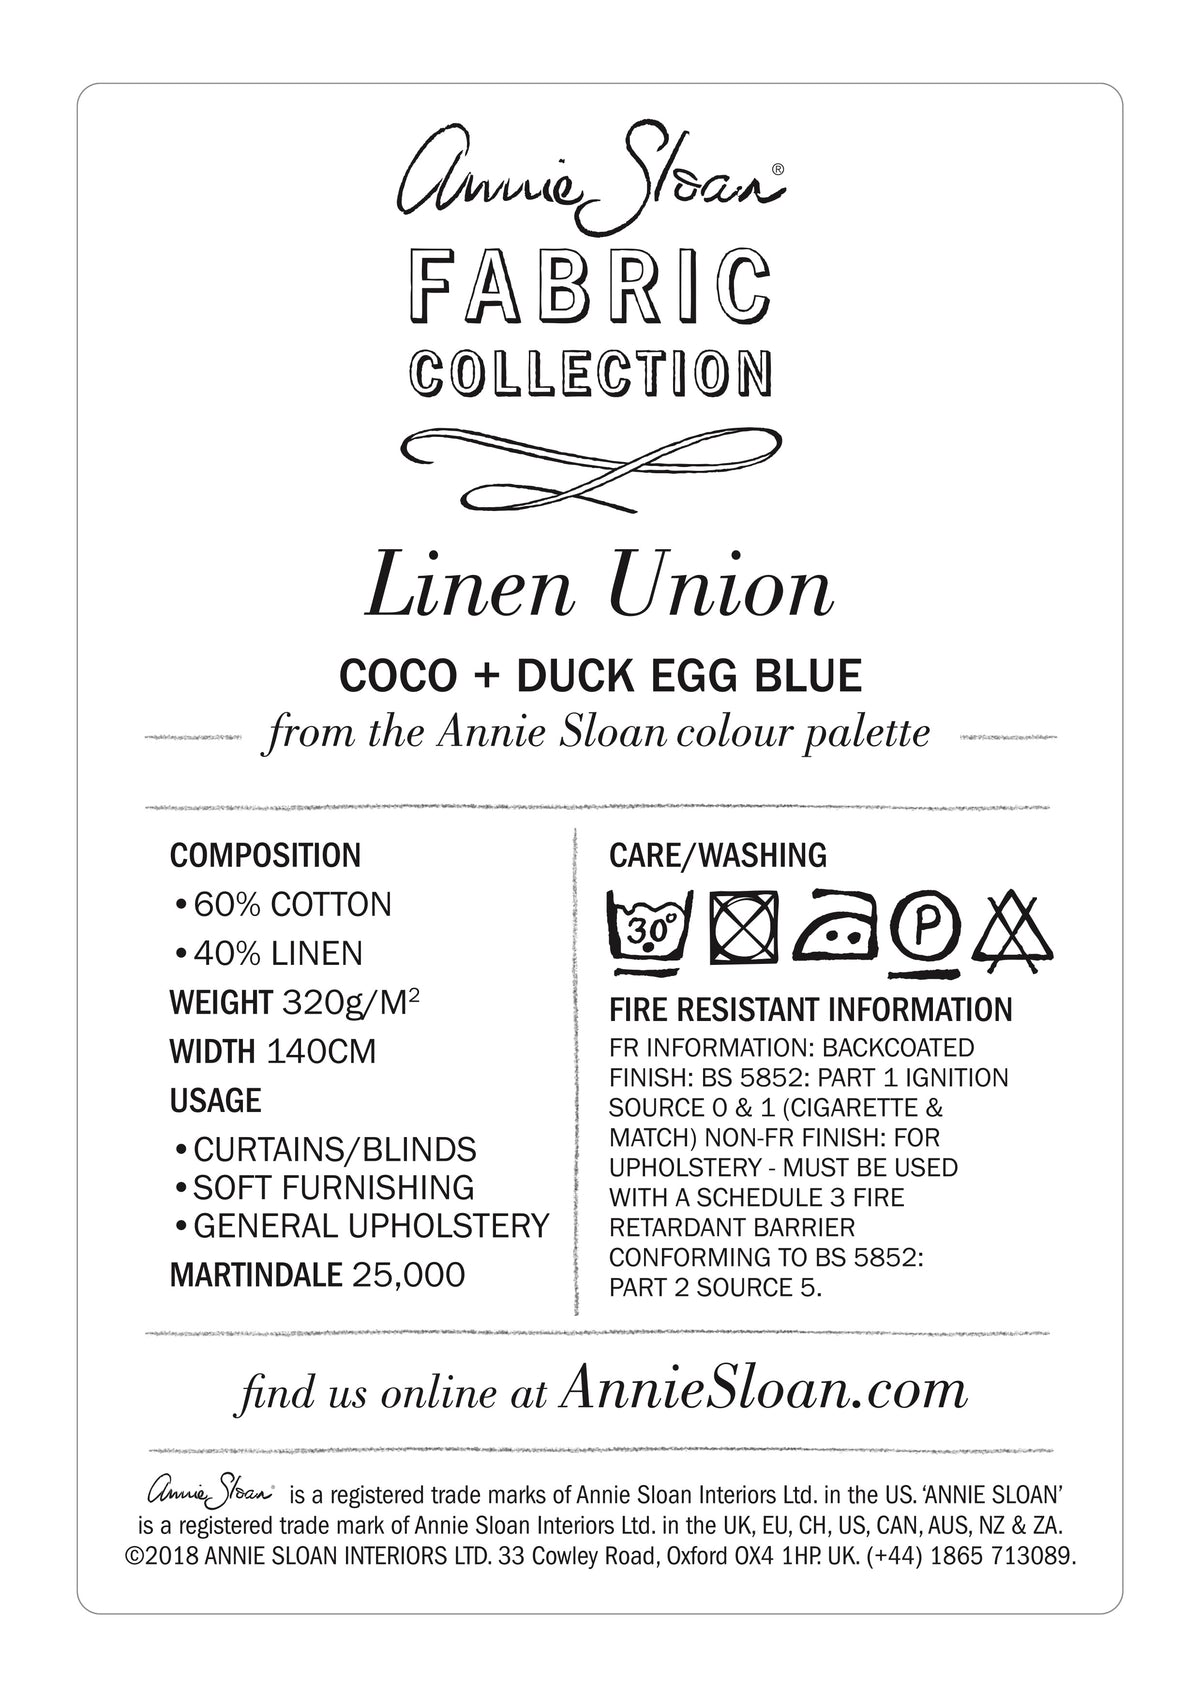 Linen Union in Coco + Duck Egg Blue